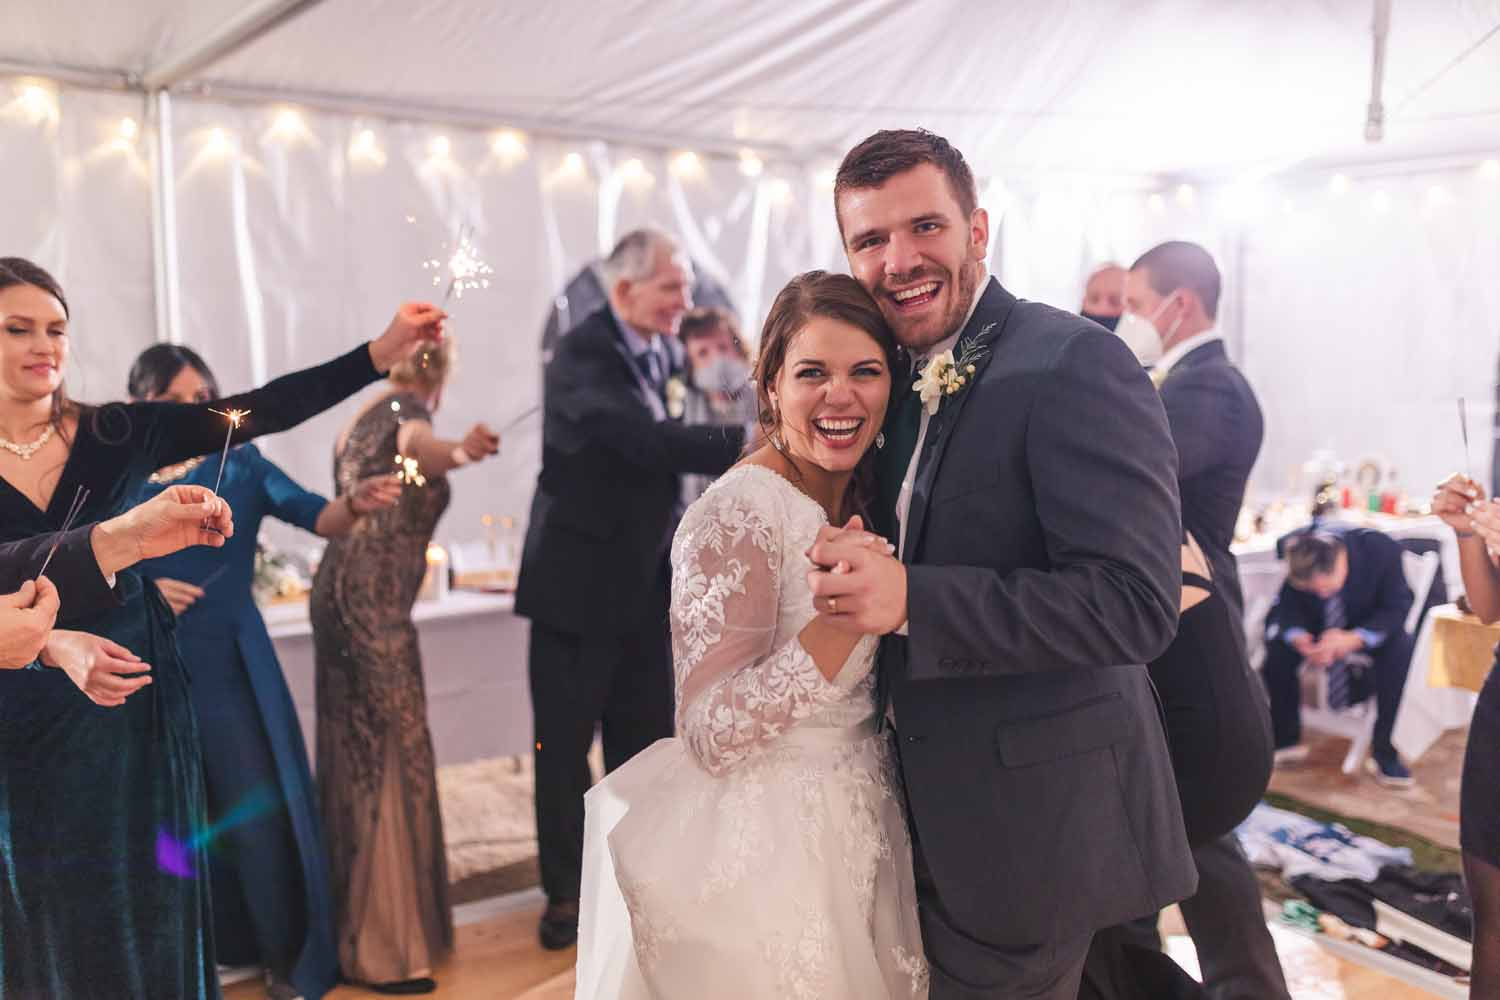 Couple dancing with guests holding sparklers